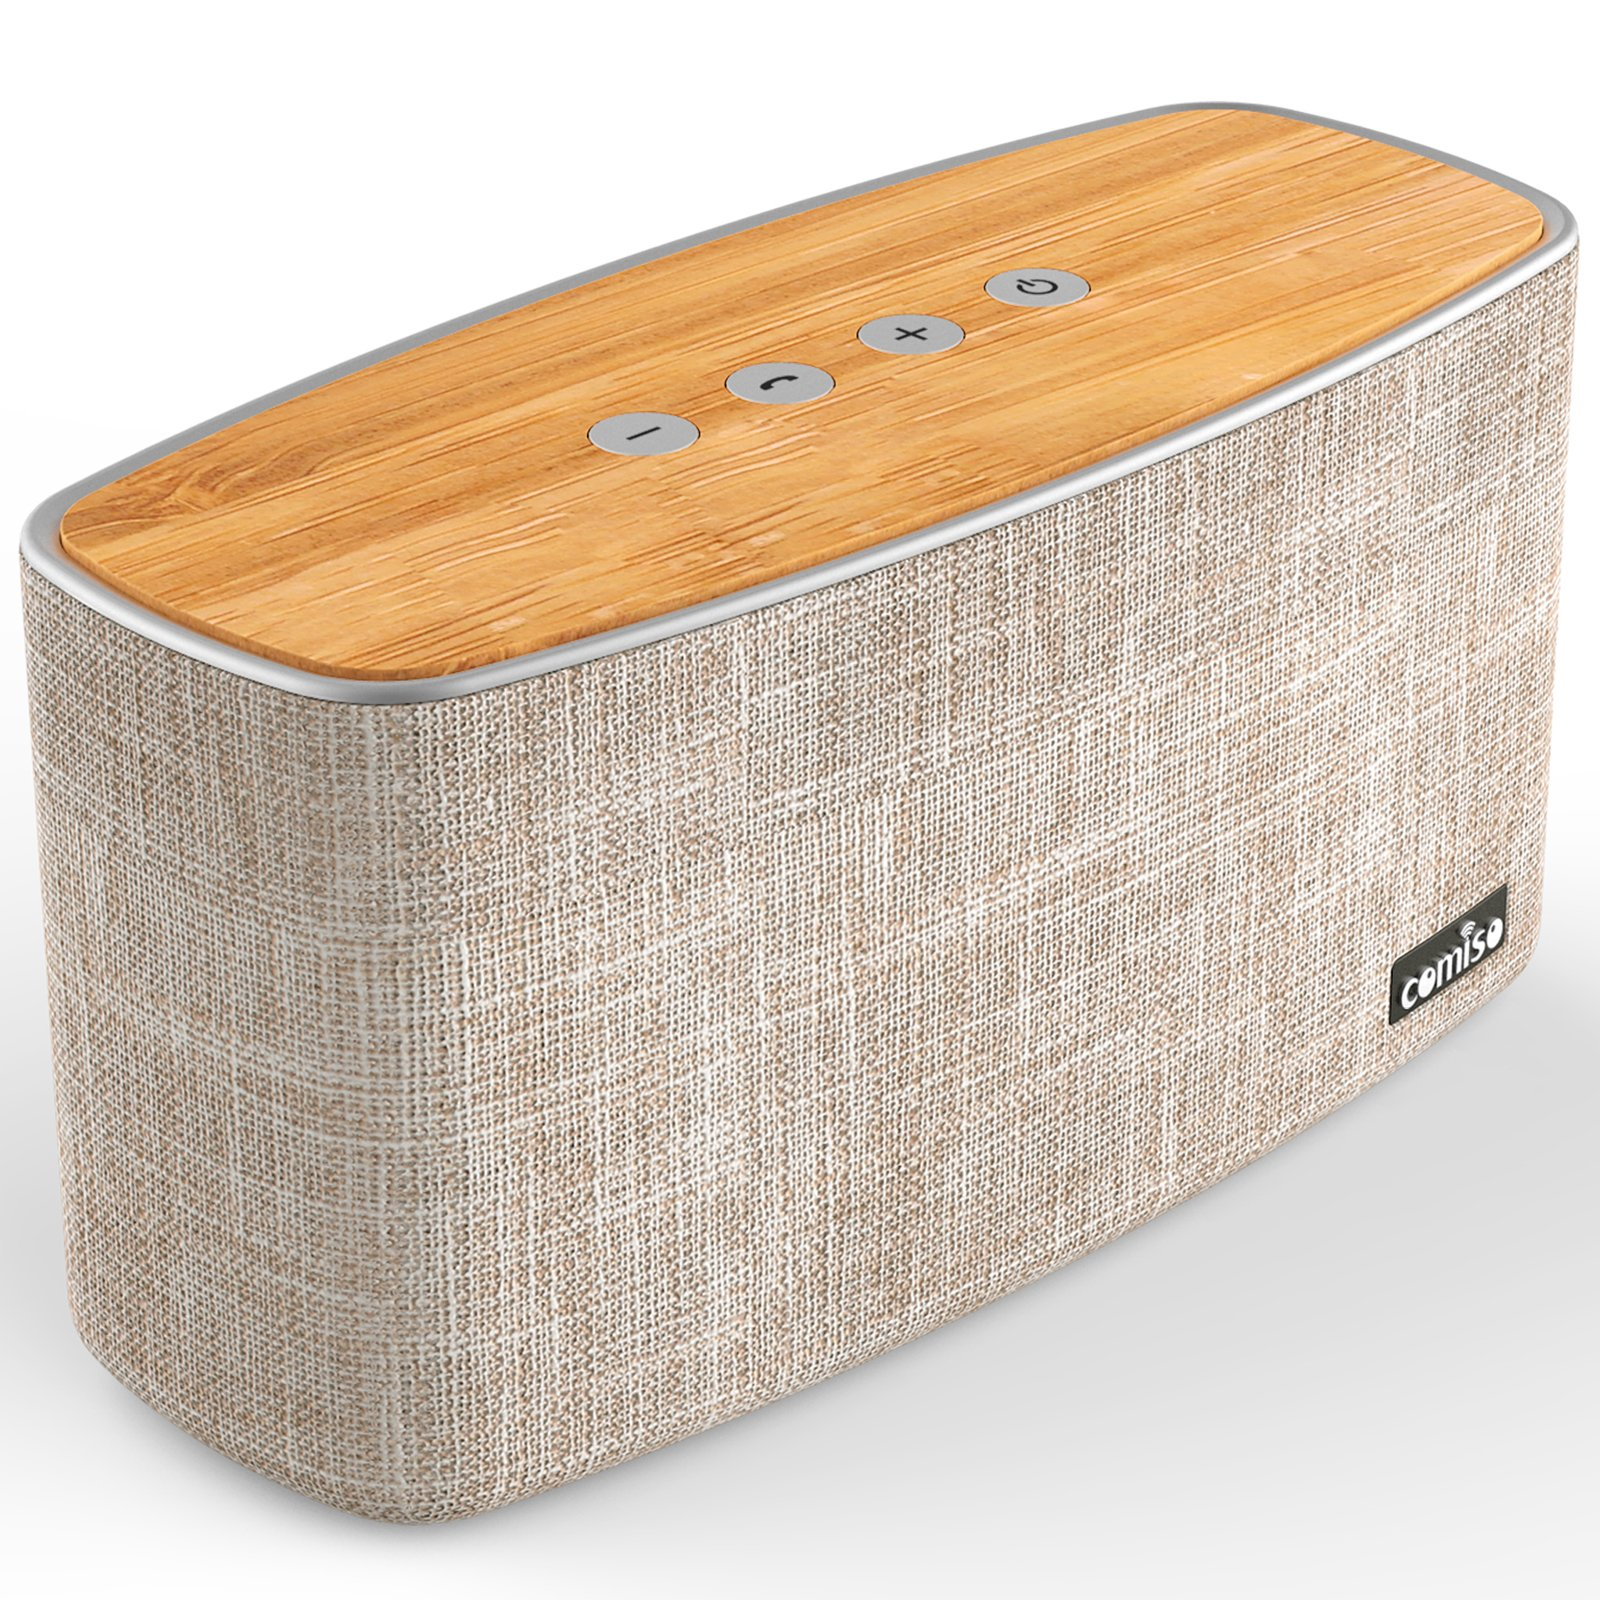 COMISO 30W Bluetooth Speakers with Super Bass, Bamboo Wood Home Speaker with Subwoofer, Up to 20 Hours Playtime by COMISO